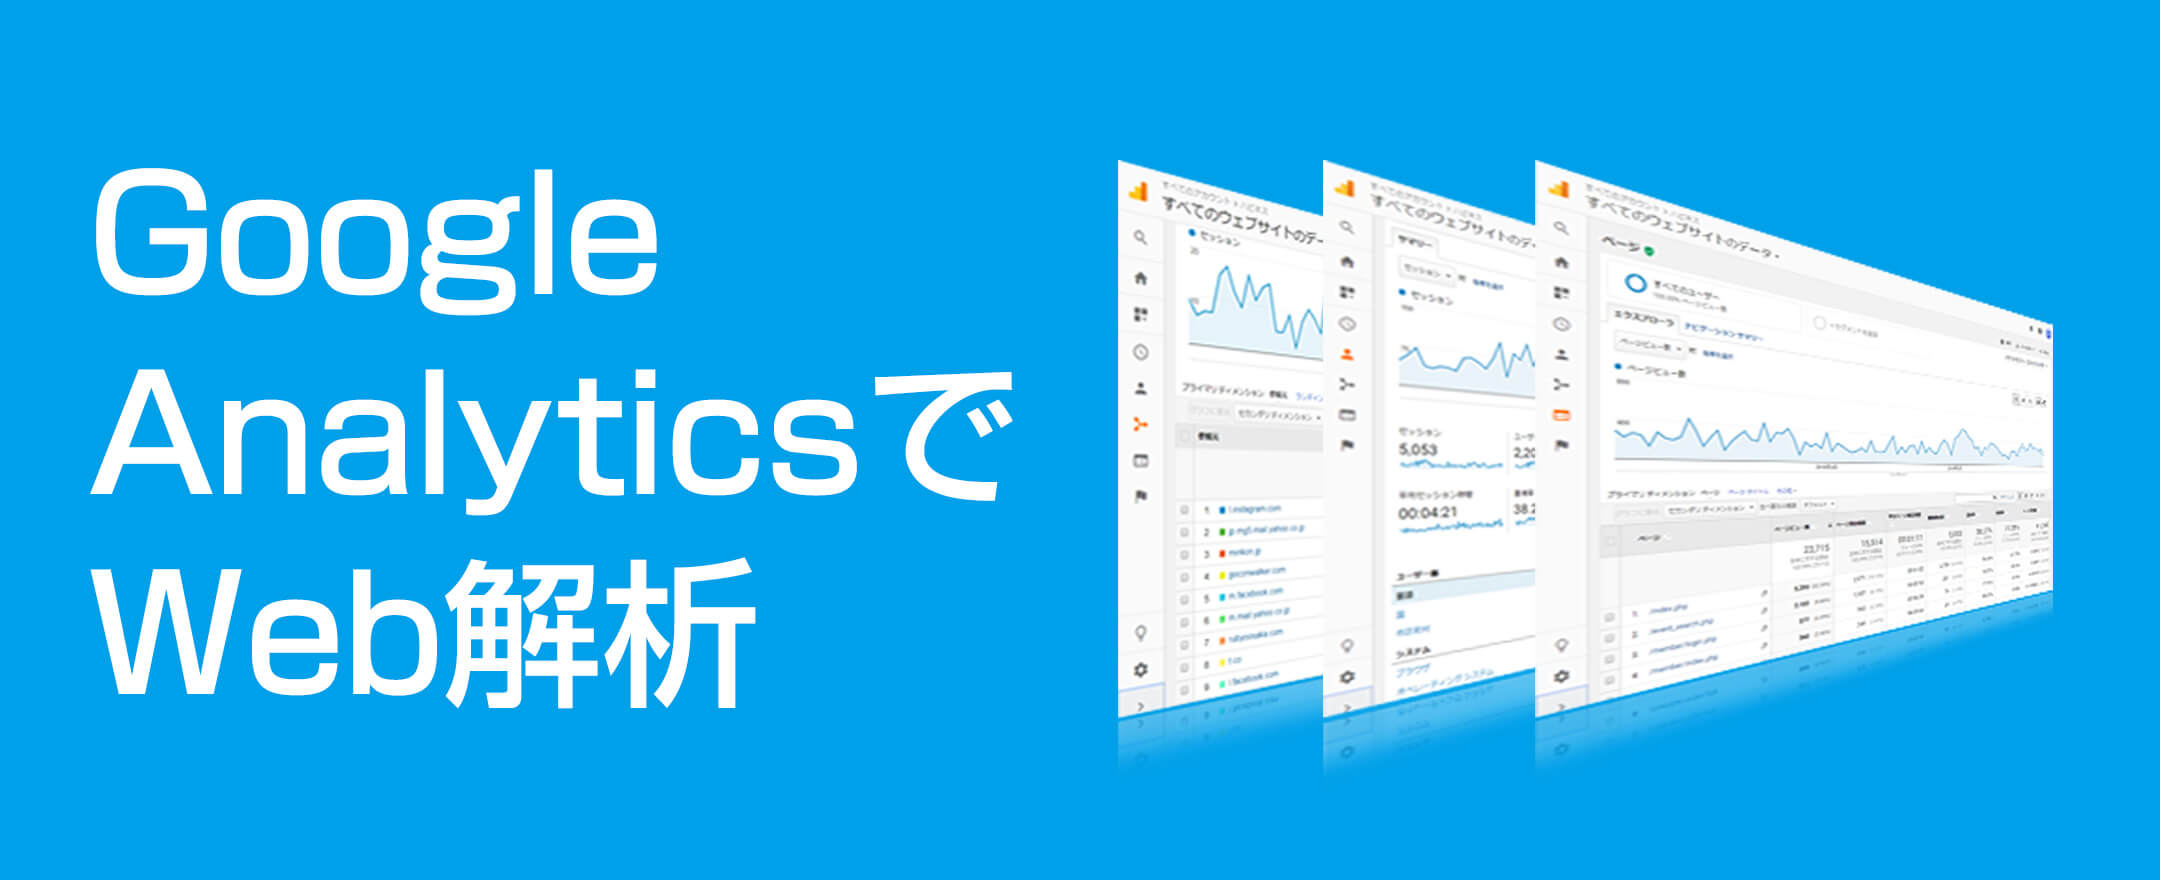 Google AnalyticsでWeb解析初級講座